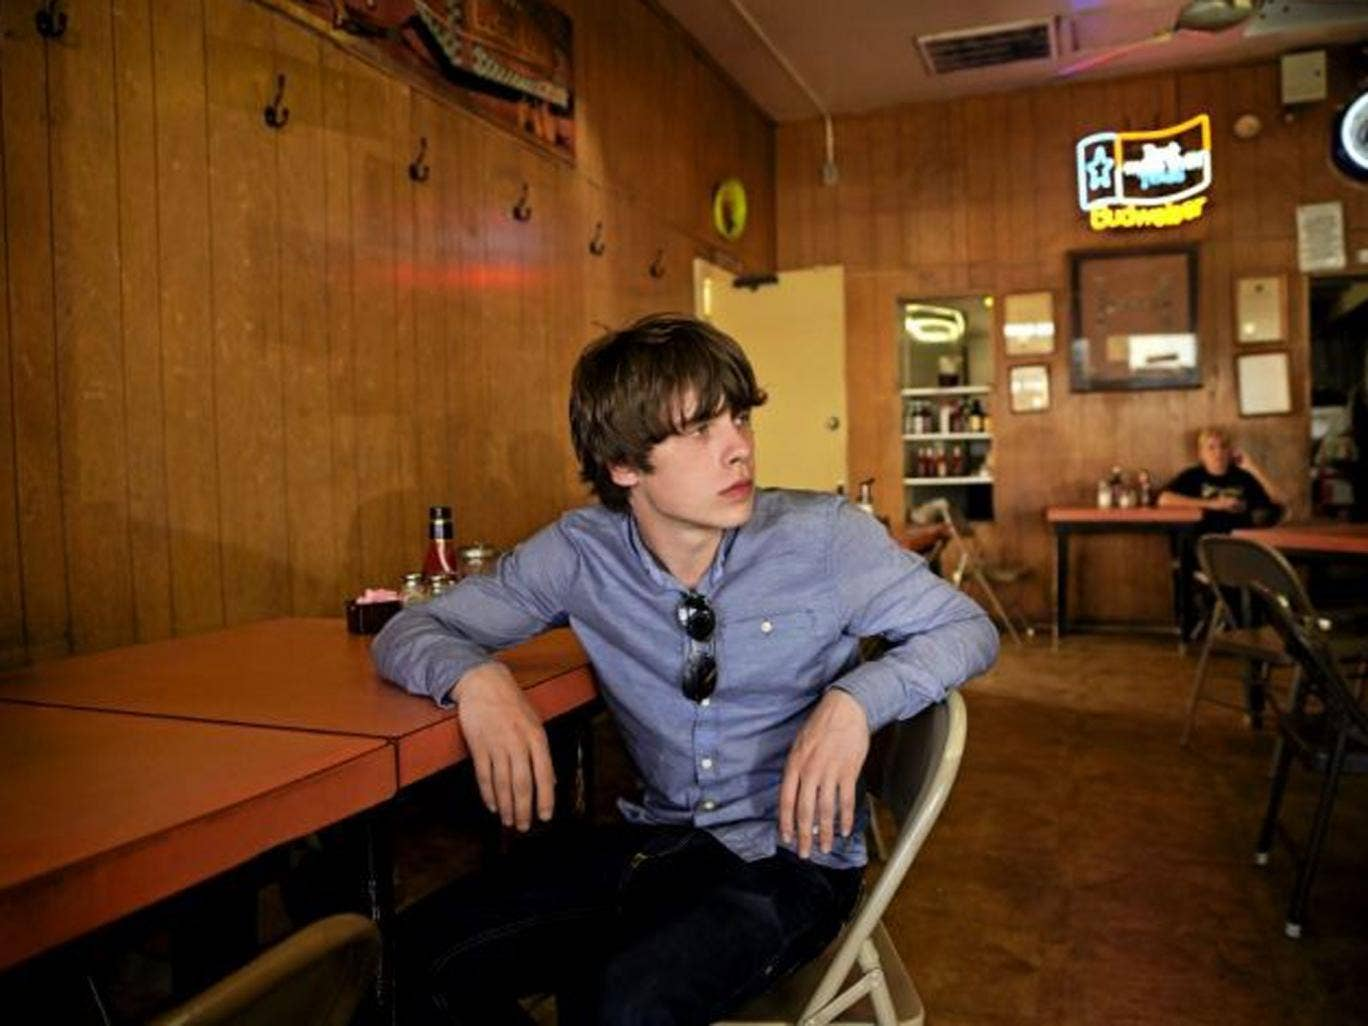 Jake Bugg's musical transition to America has not adversely affected his work